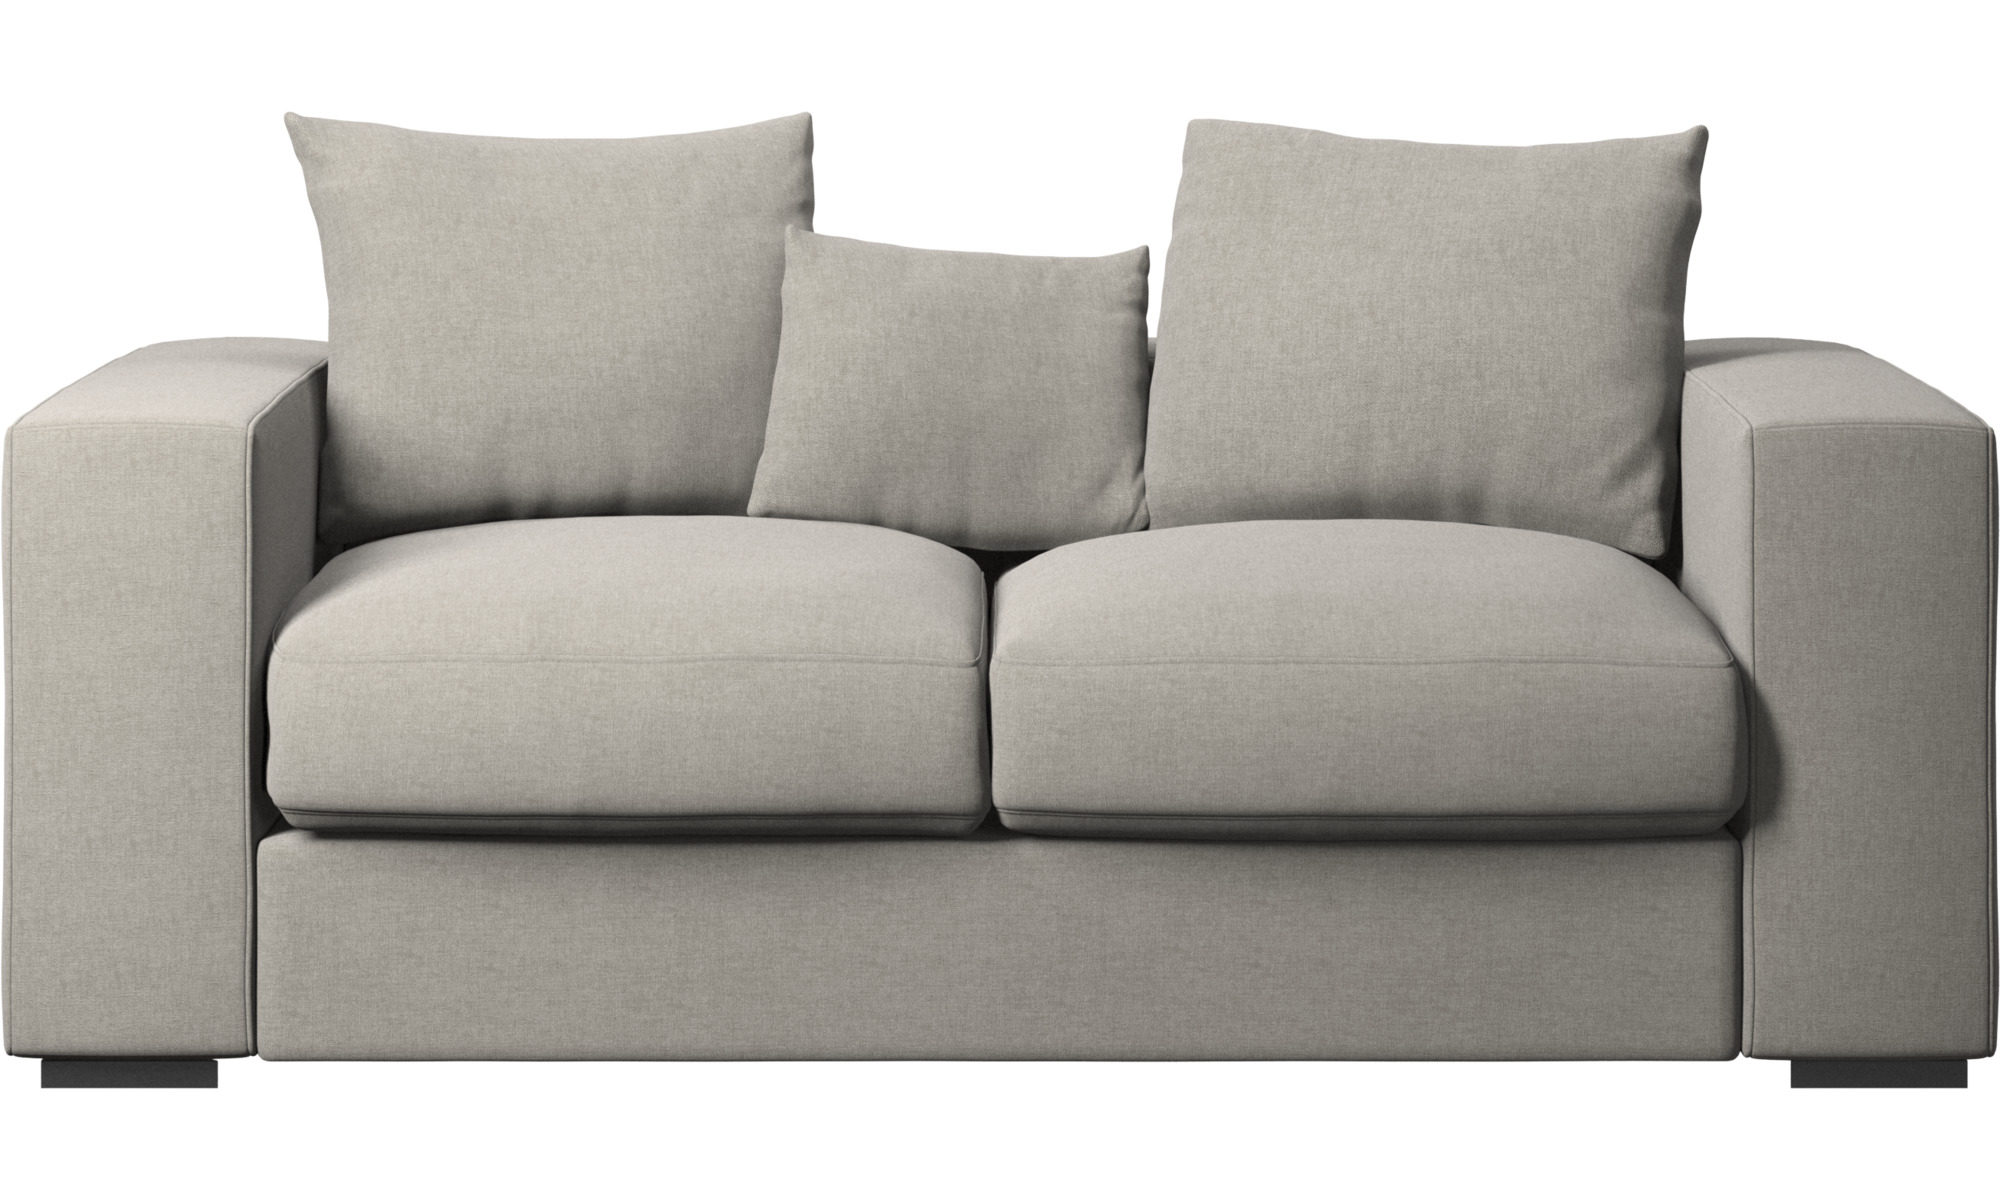 ligne roset sofa bed instructions